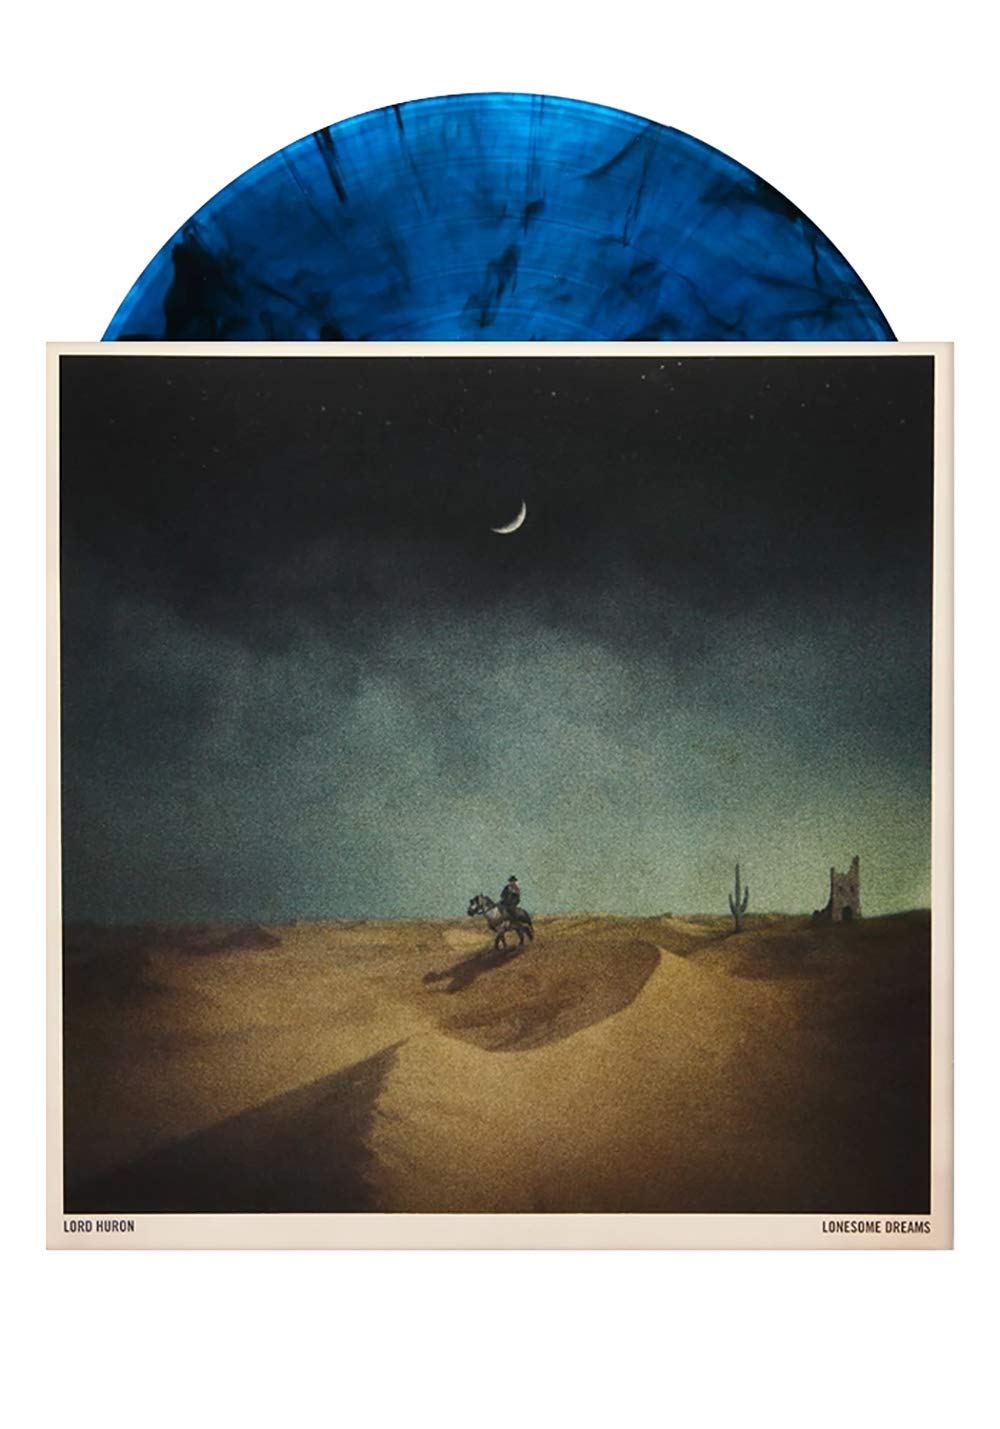 Lonesome Dreams - Exclusive Limited Edition Blue Smoke Colored Vinyl LP by IAmSound Records